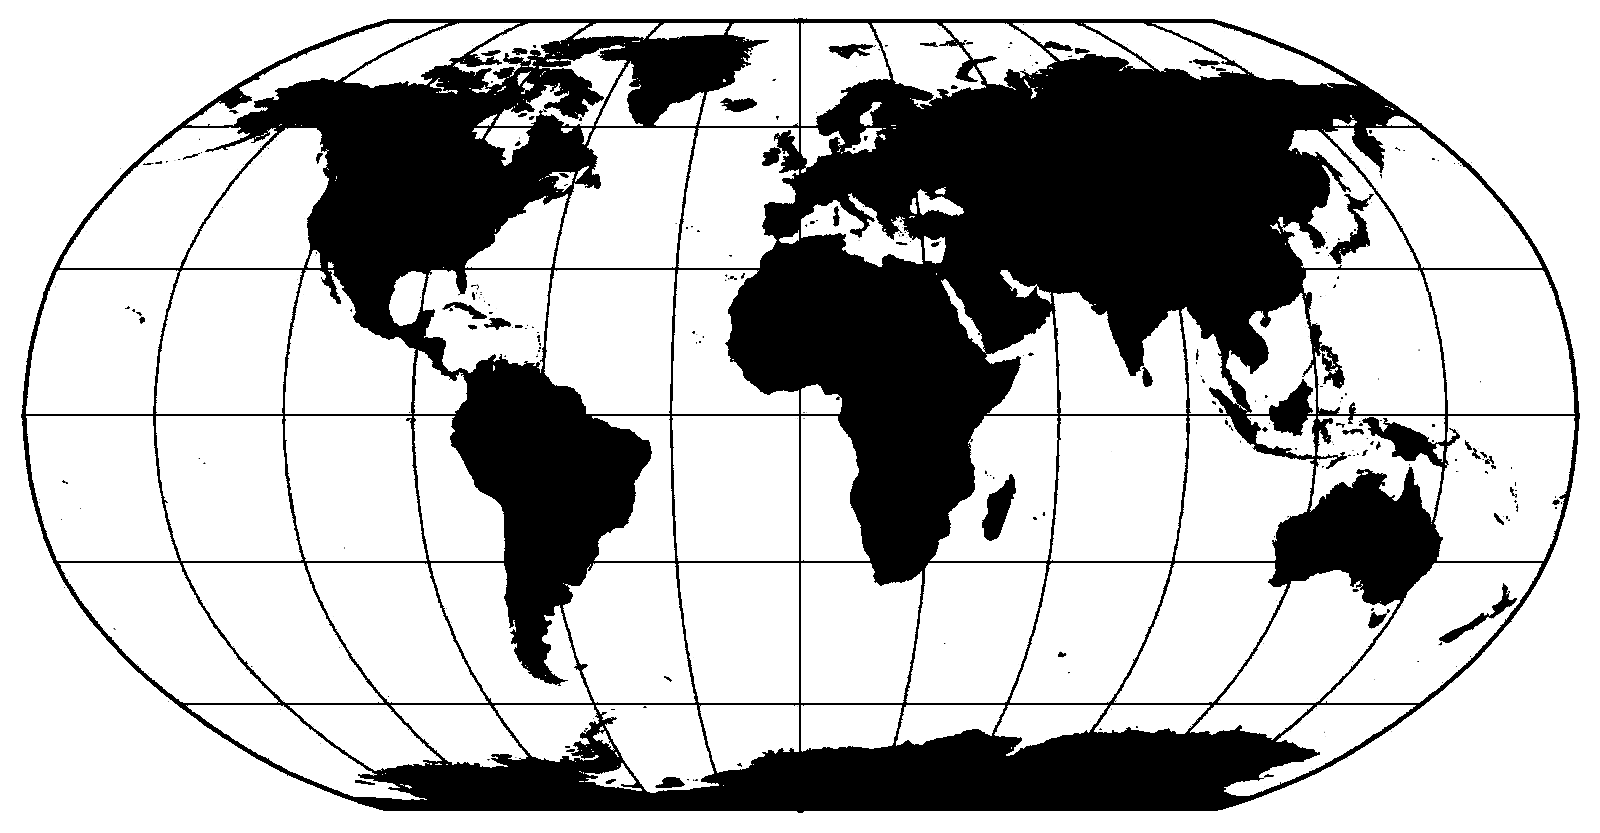 File:World map black.png - Wikipedia